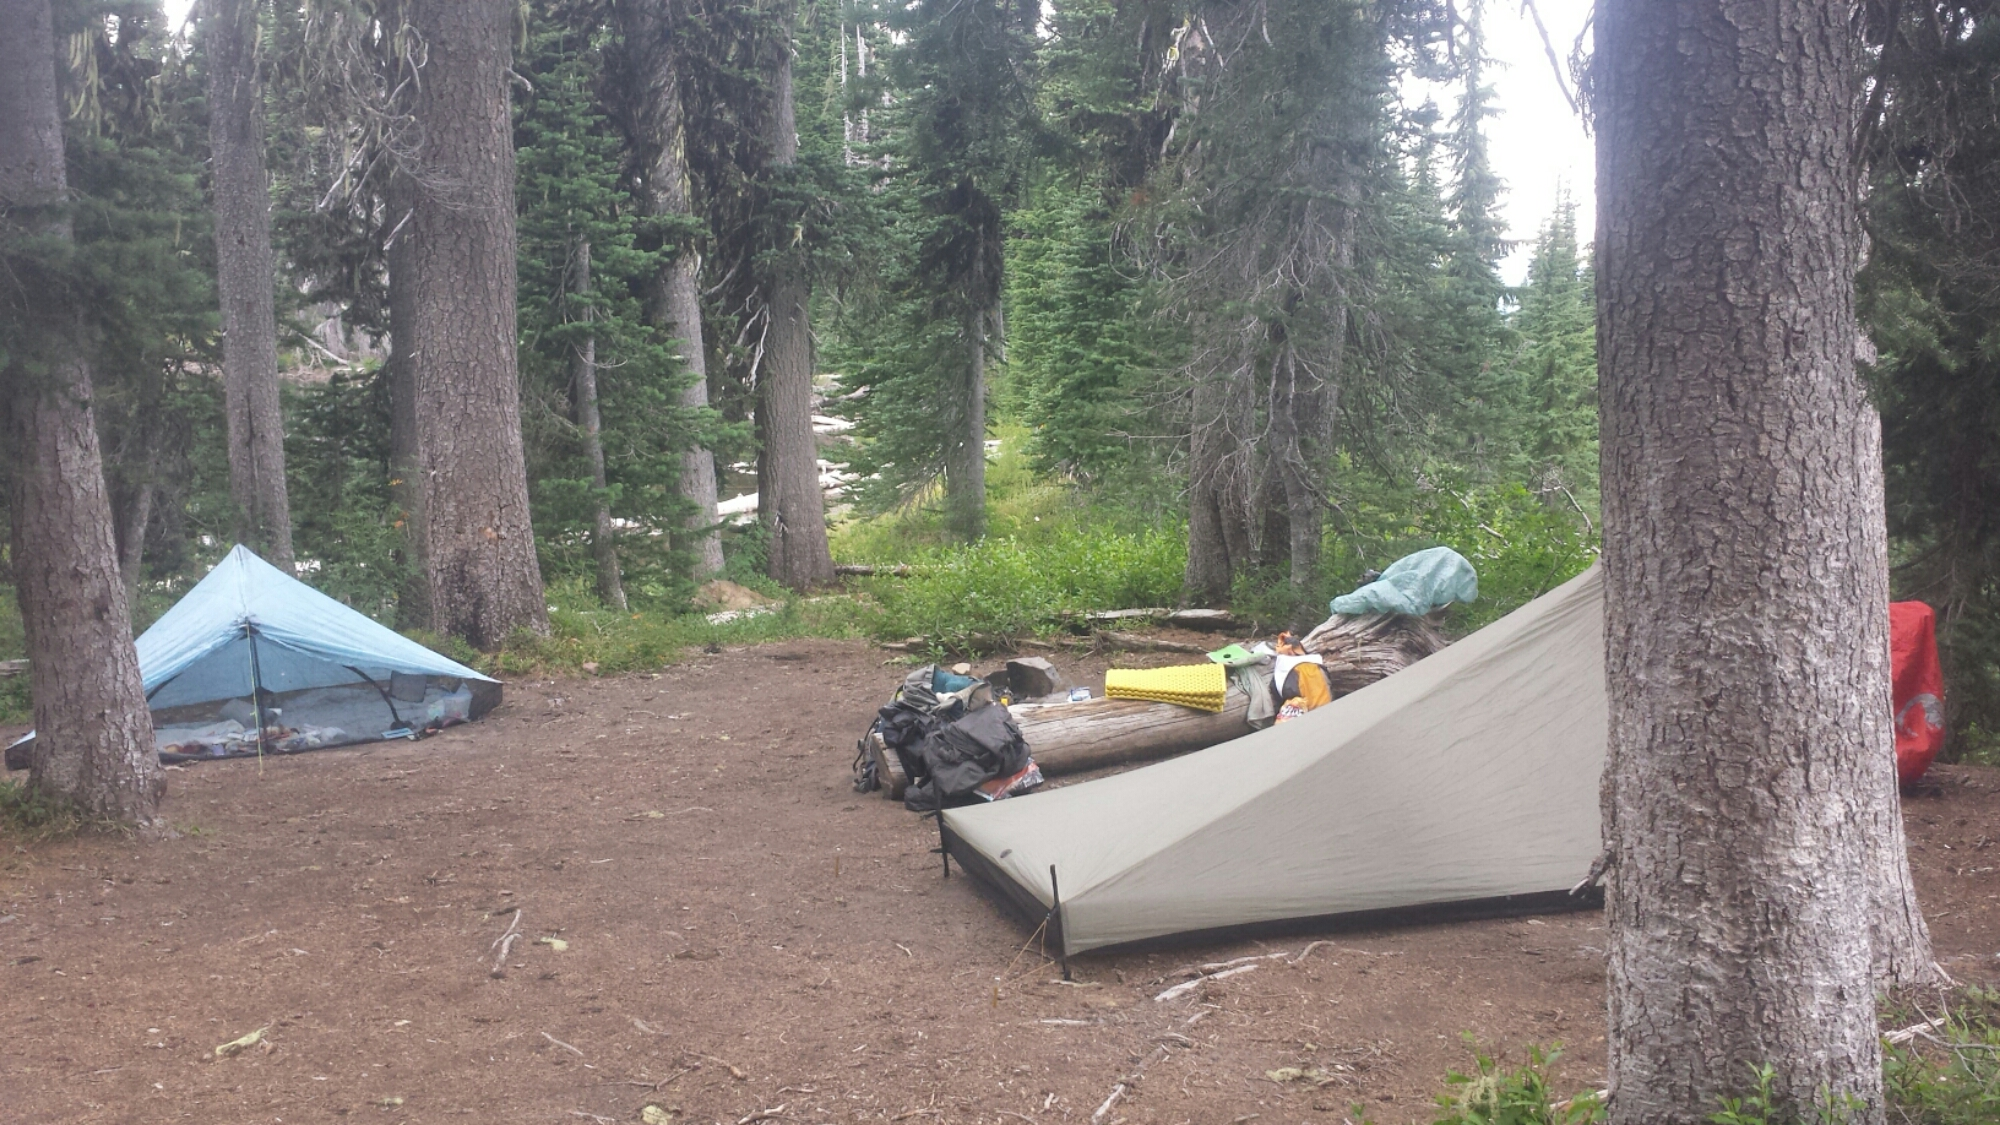 Camping at Sheep Lake